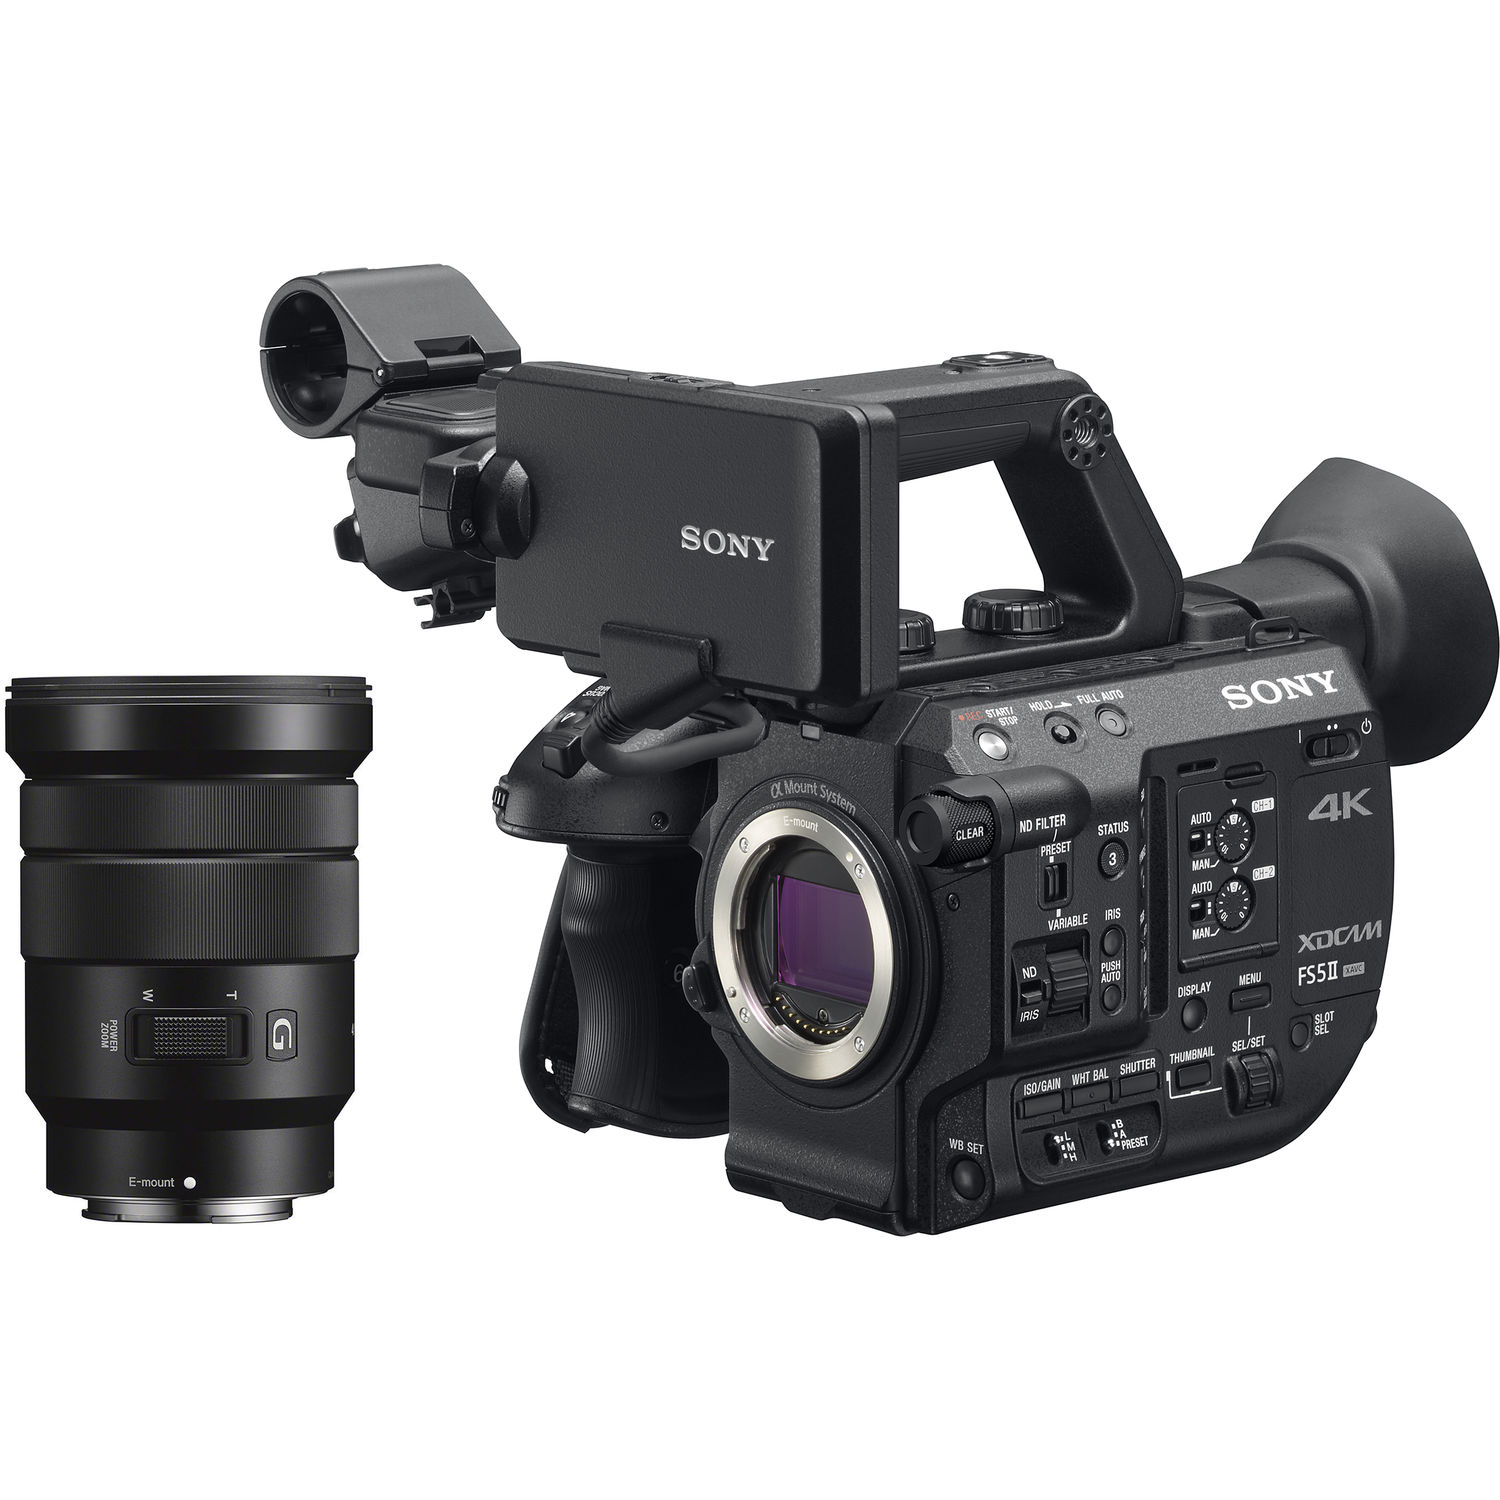 Sony 4K XDCAM Super 35mm Compact Camcorder with 18 to ...